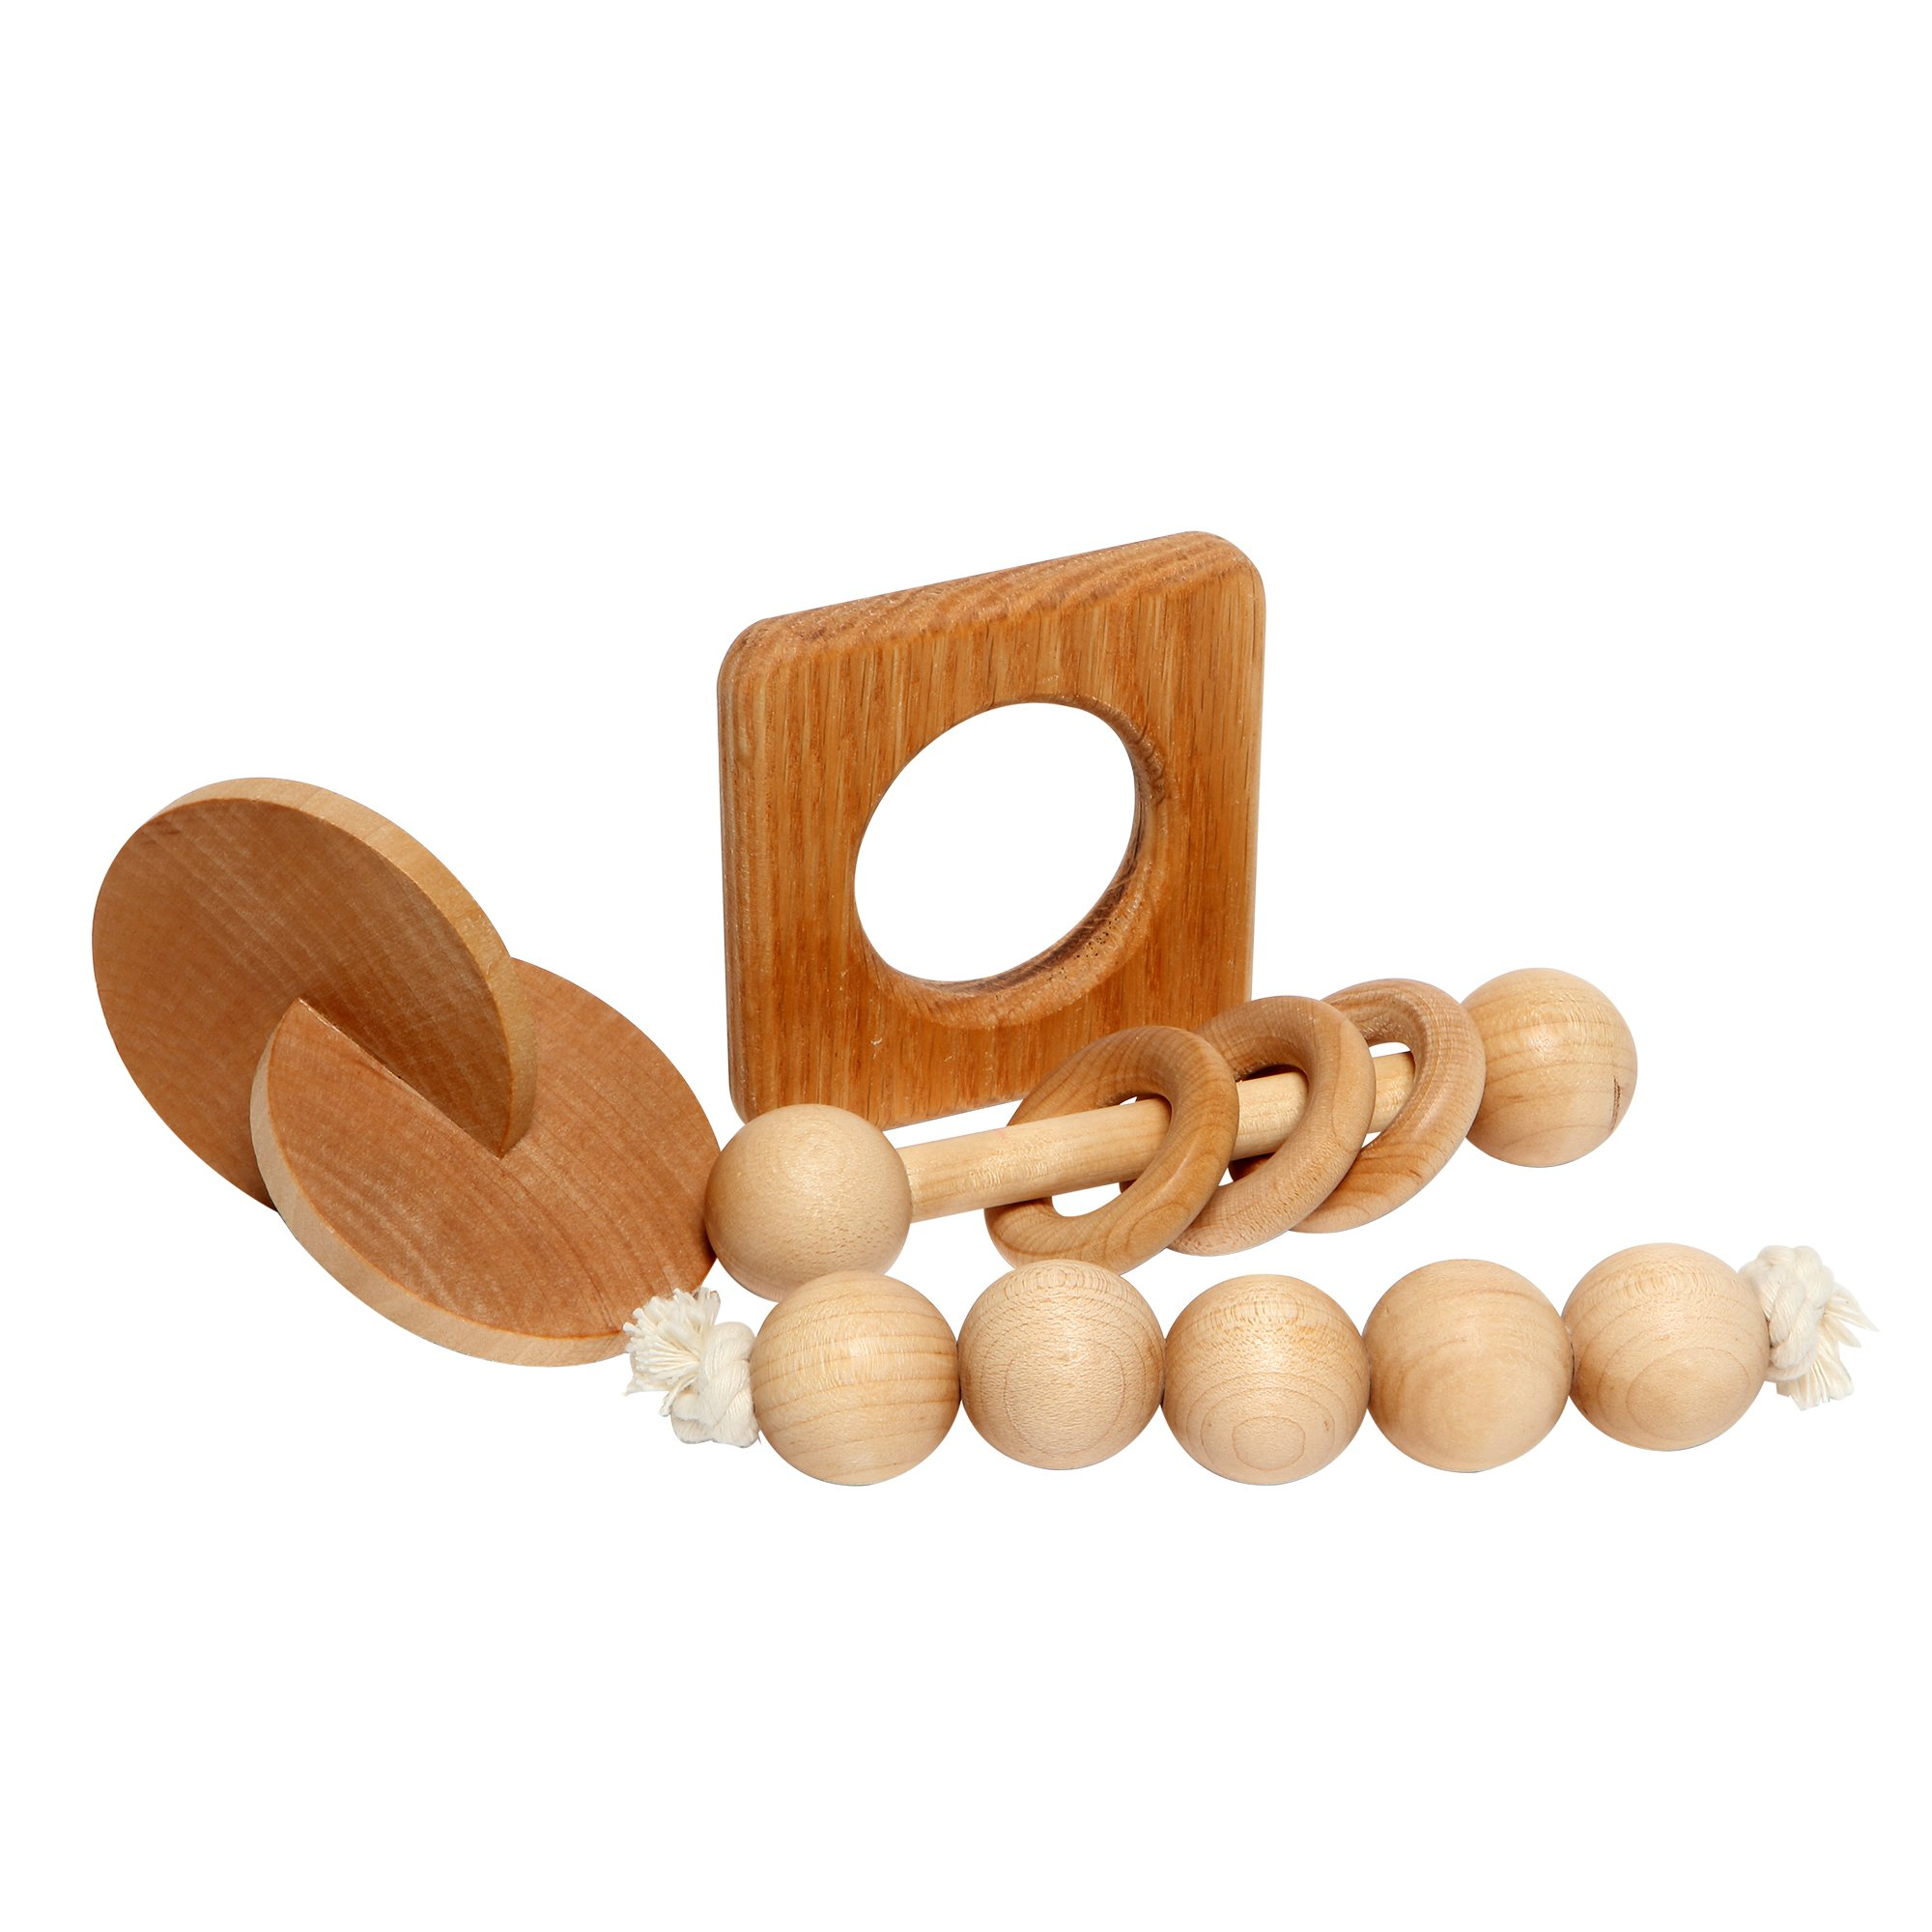 montessori inspired wooden baby toys- Set of 4 includes a rattle, teethers and bonus eBook